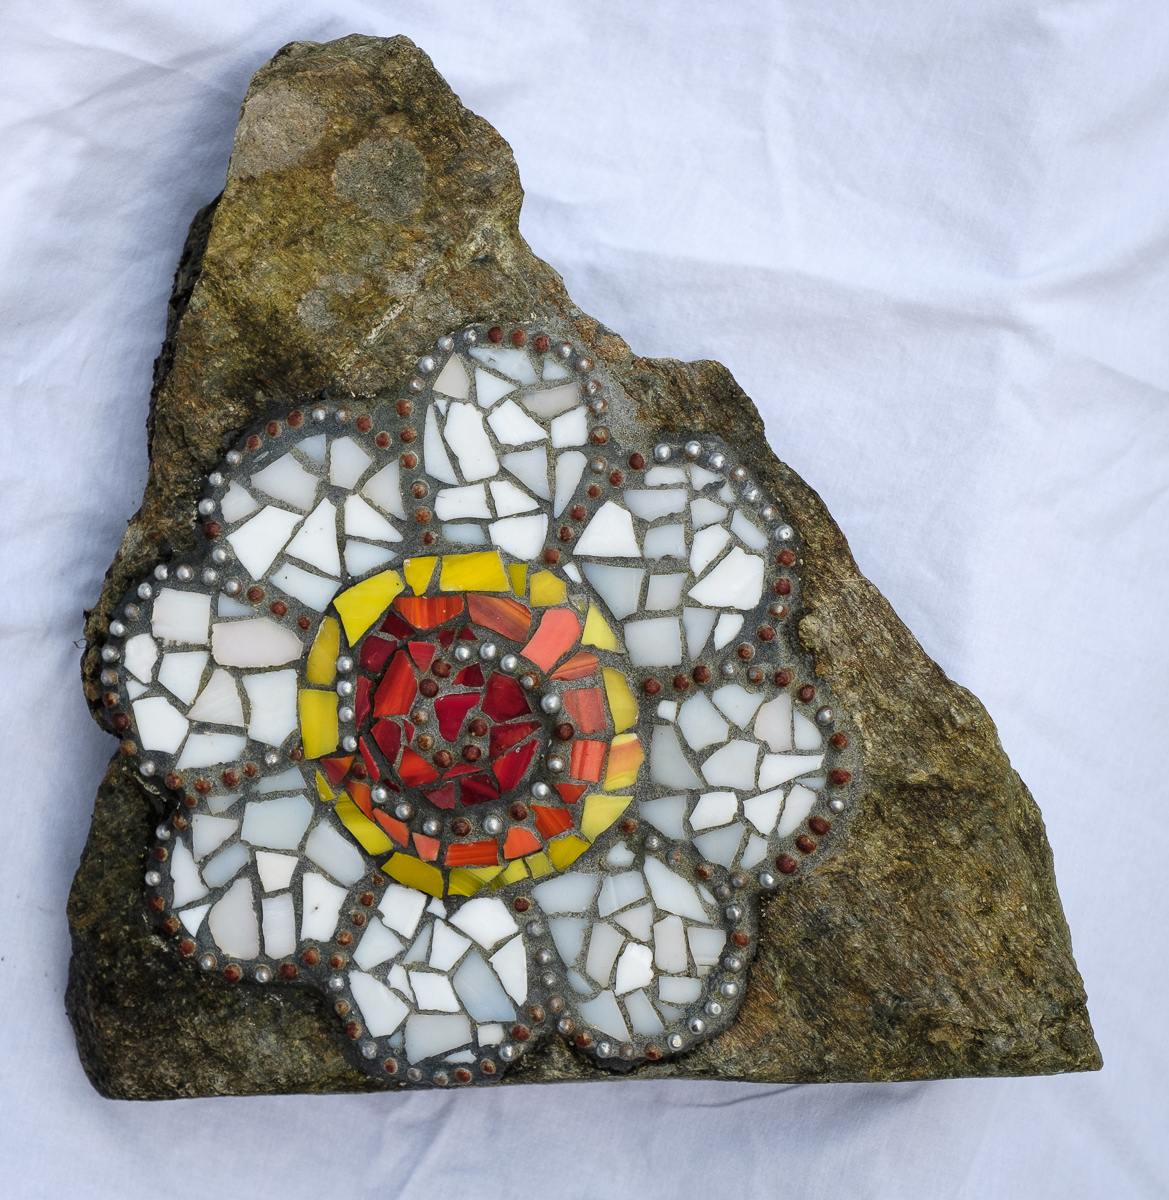 Mosaic Flower on a Rock